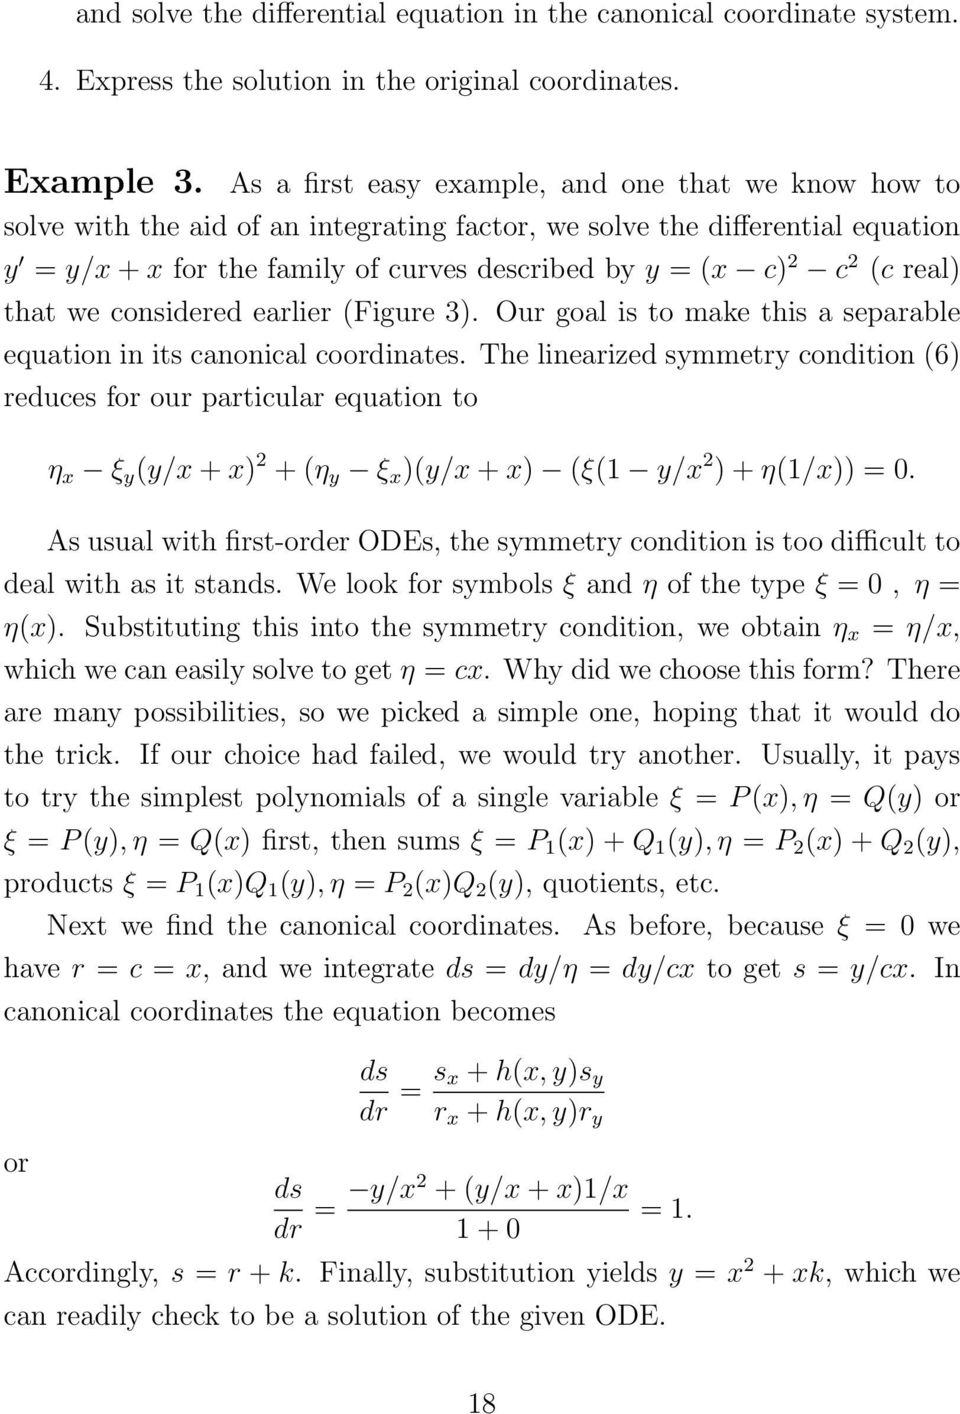 Solving Differential Equations by Symmetry Groups - PDF